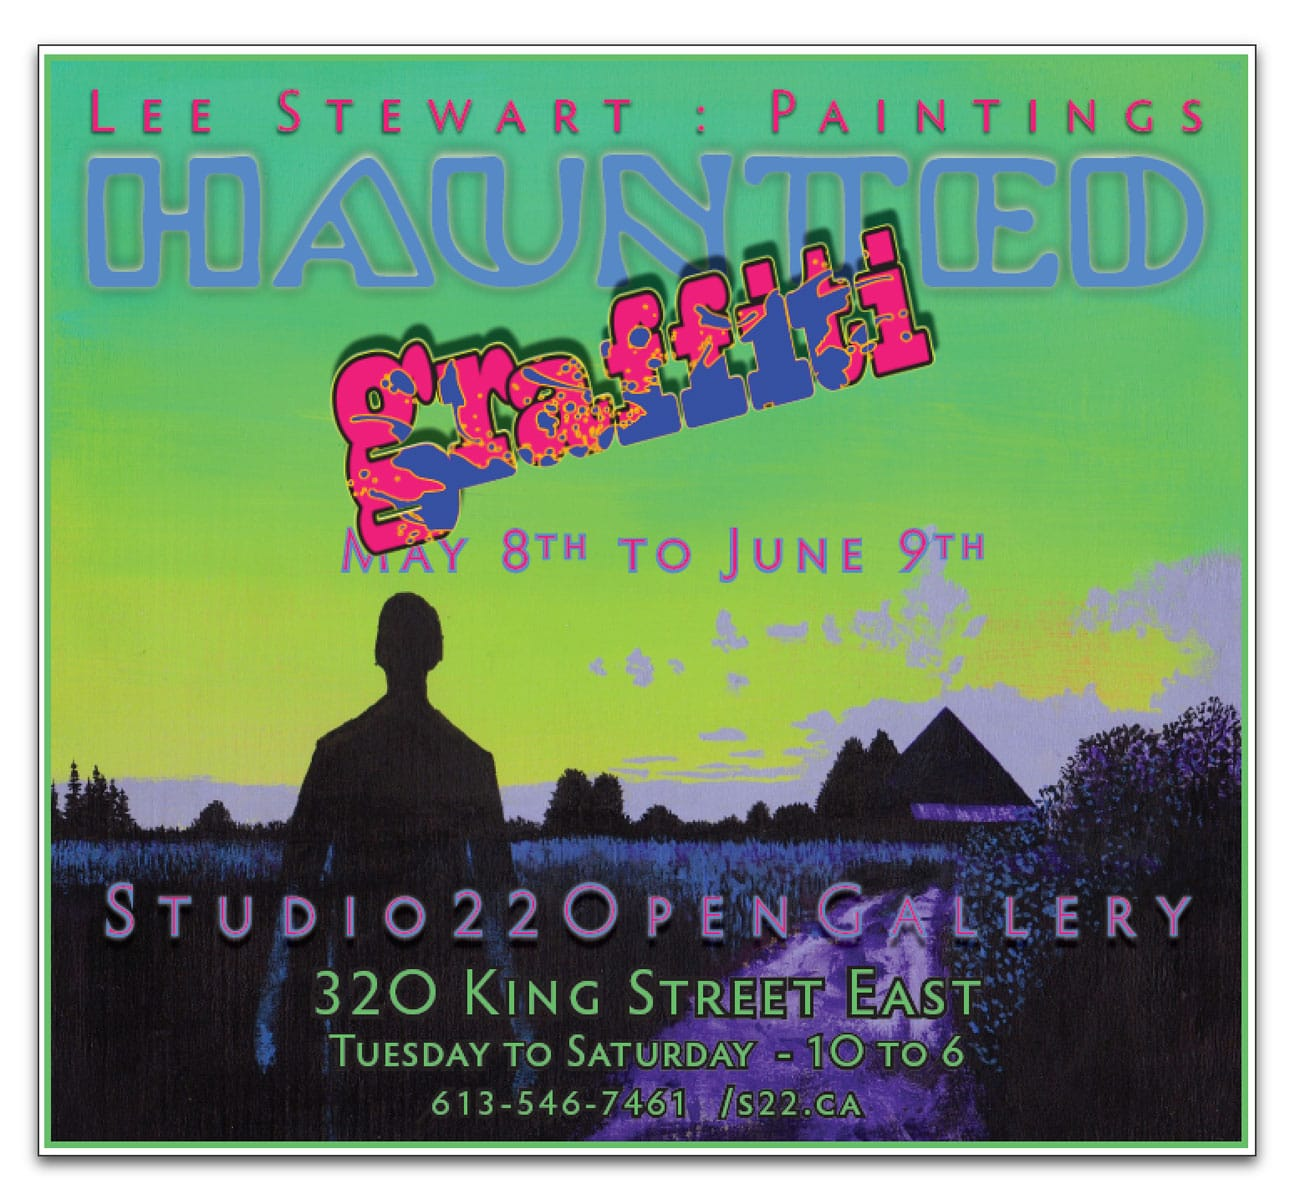 HAUNTED GRAFFITI – New paintings by Lee Stewart